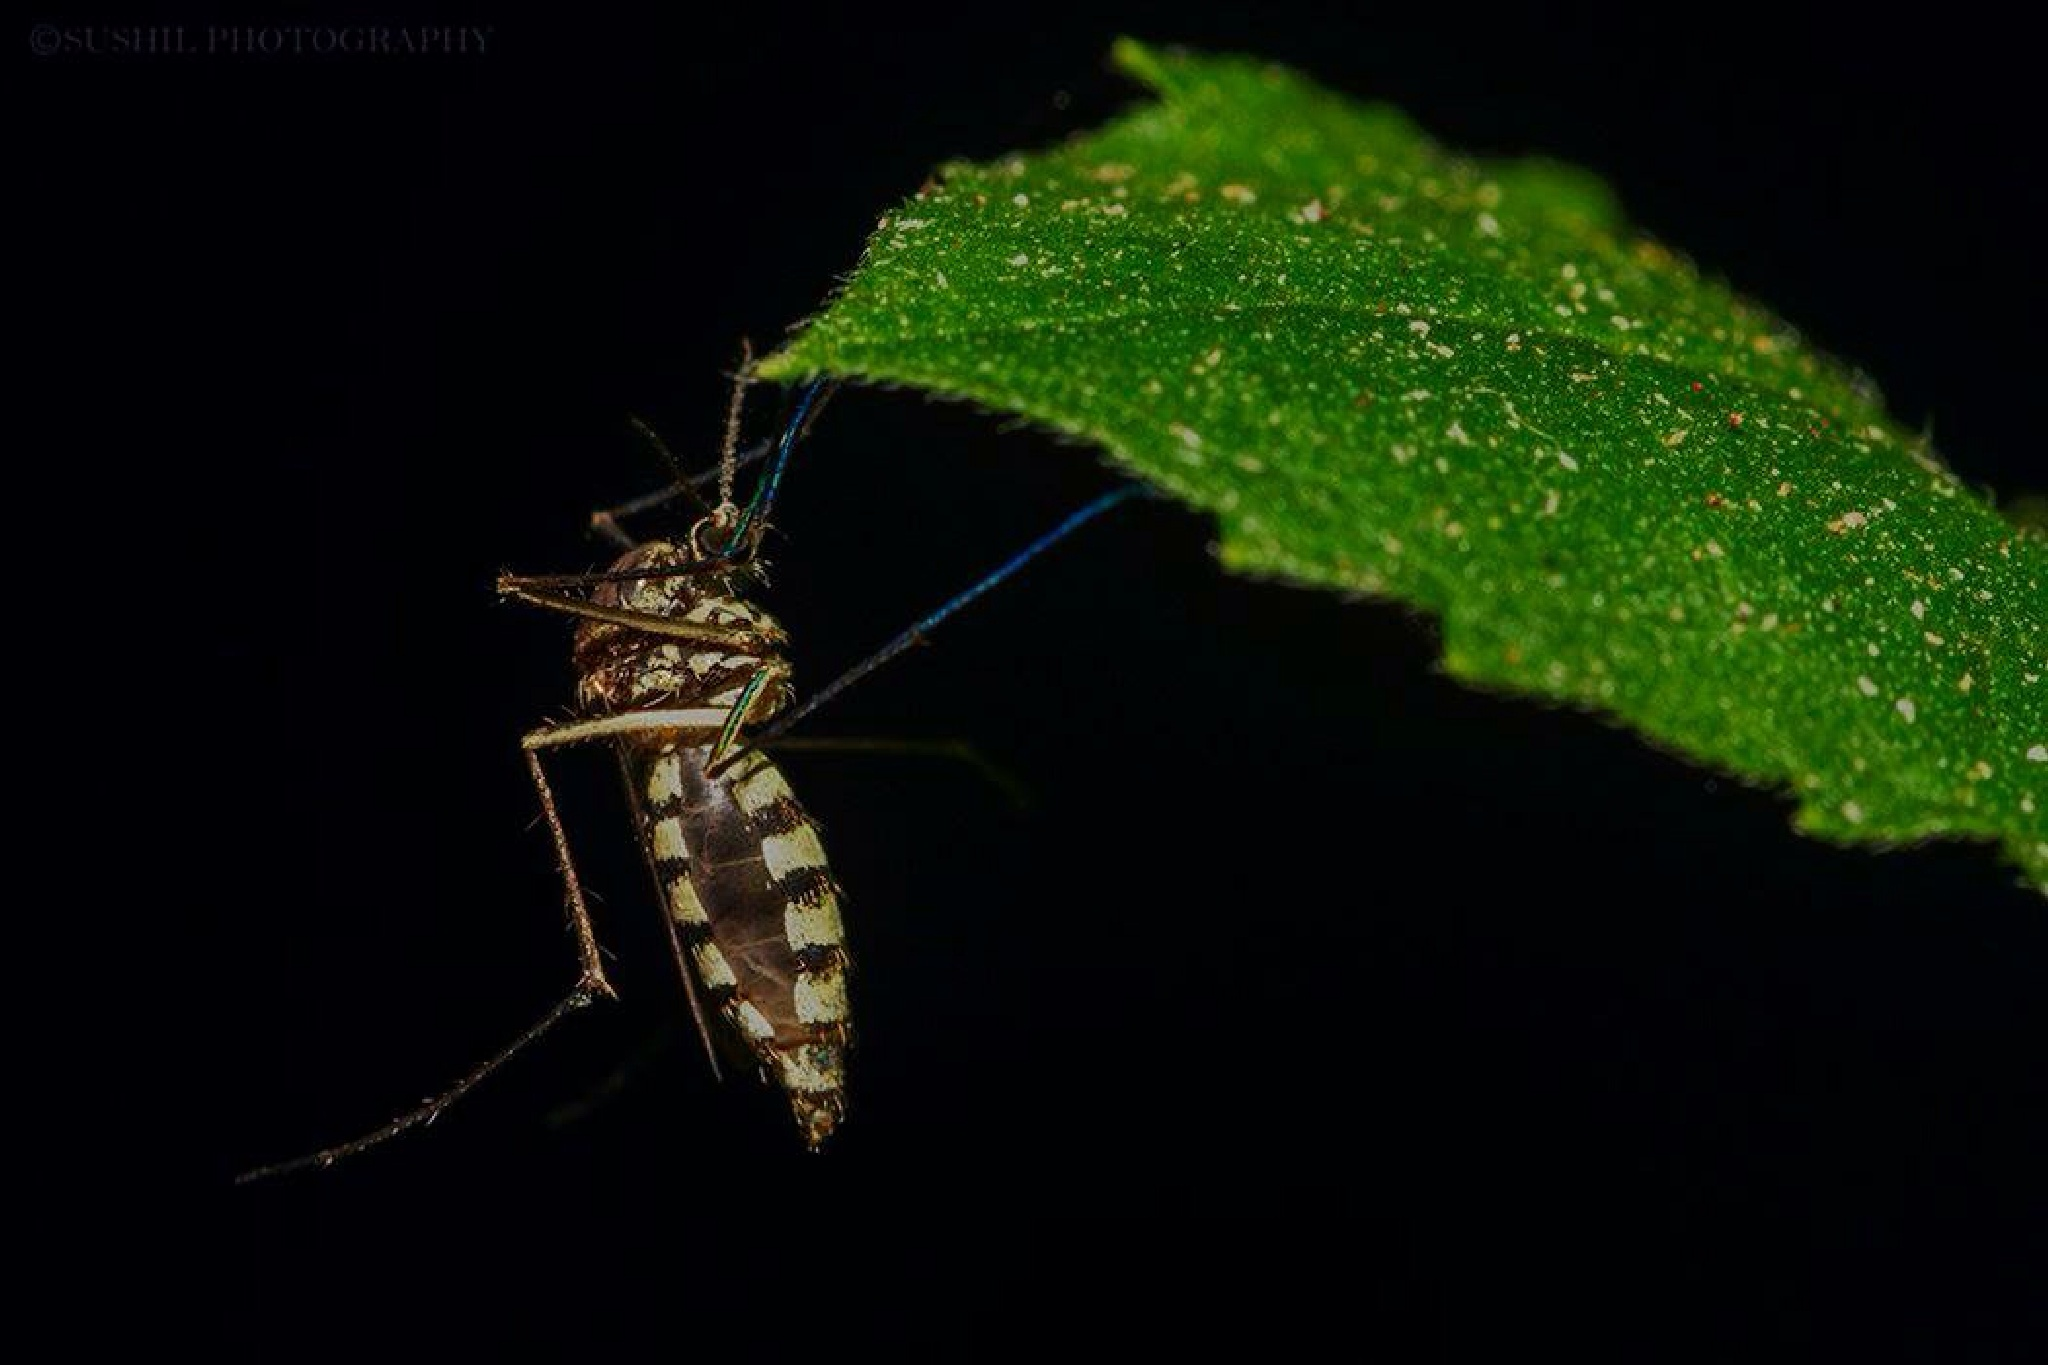 Mosquito by Sushil Dhanawde